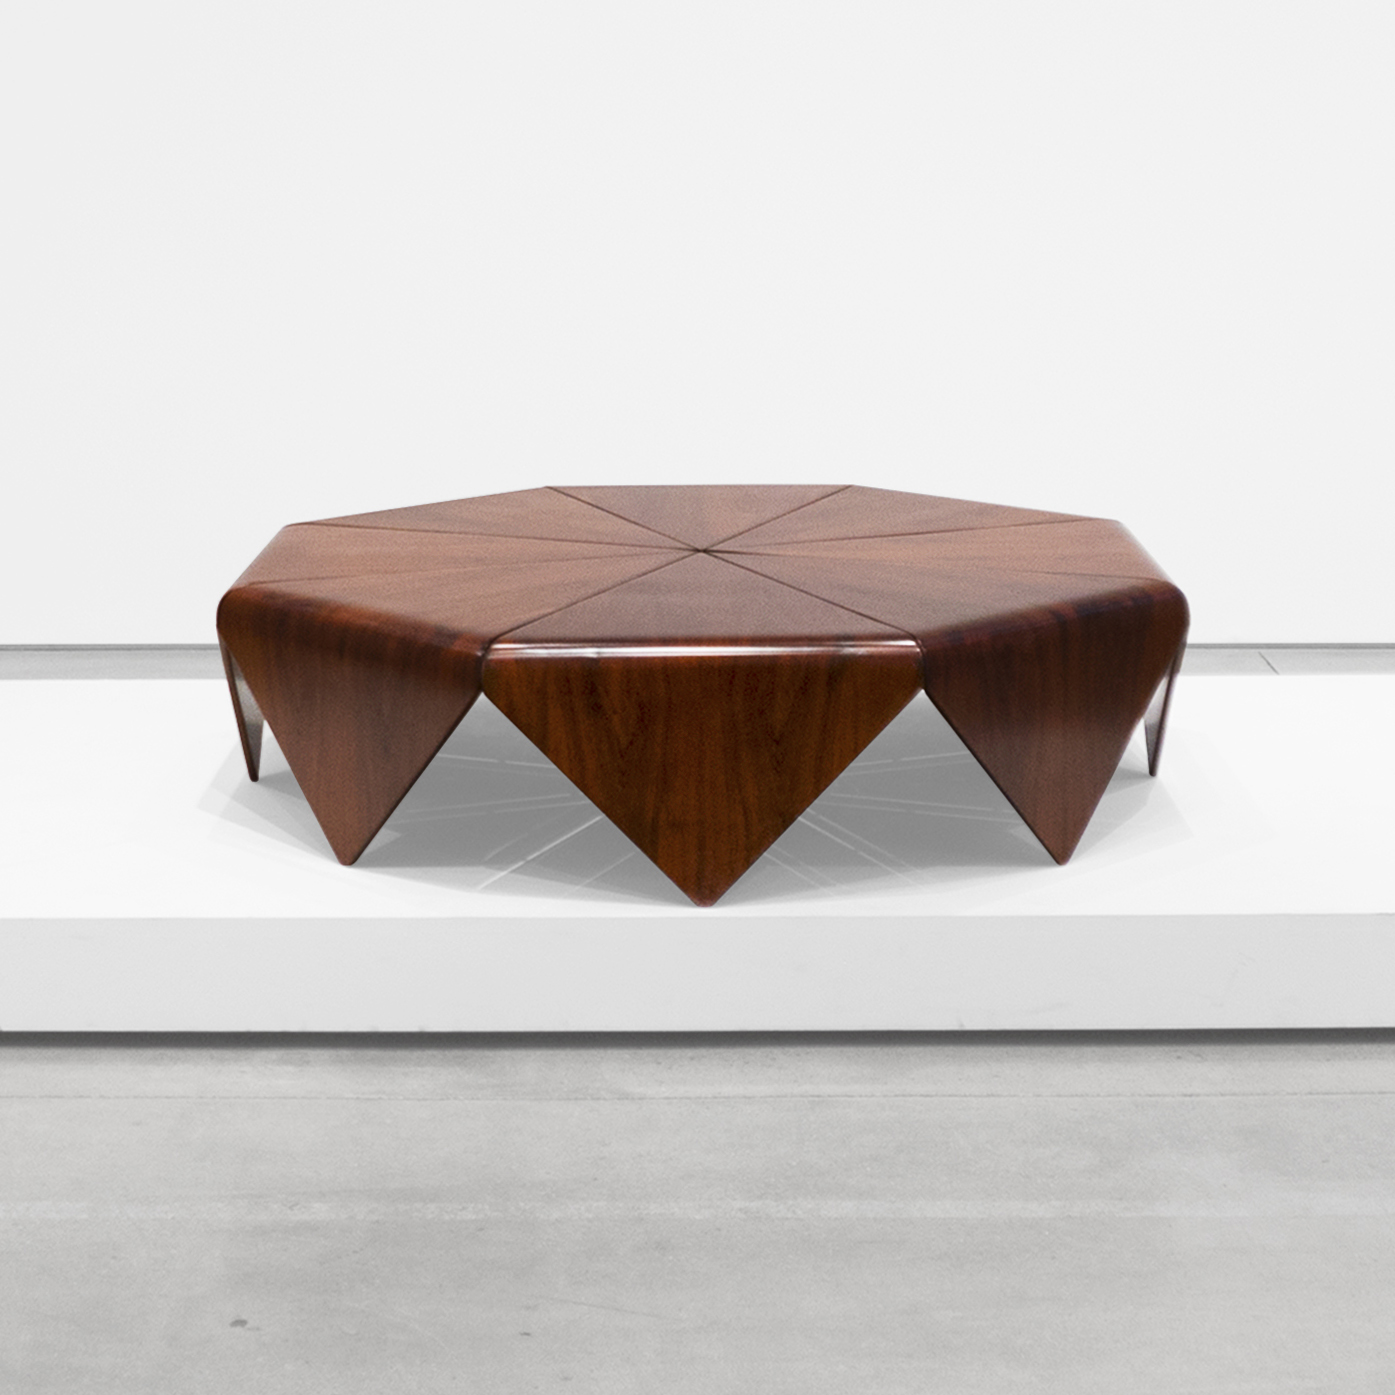 jorge zalszupin  'petalAs' rosewood coffee table  c. 1960 - 1969